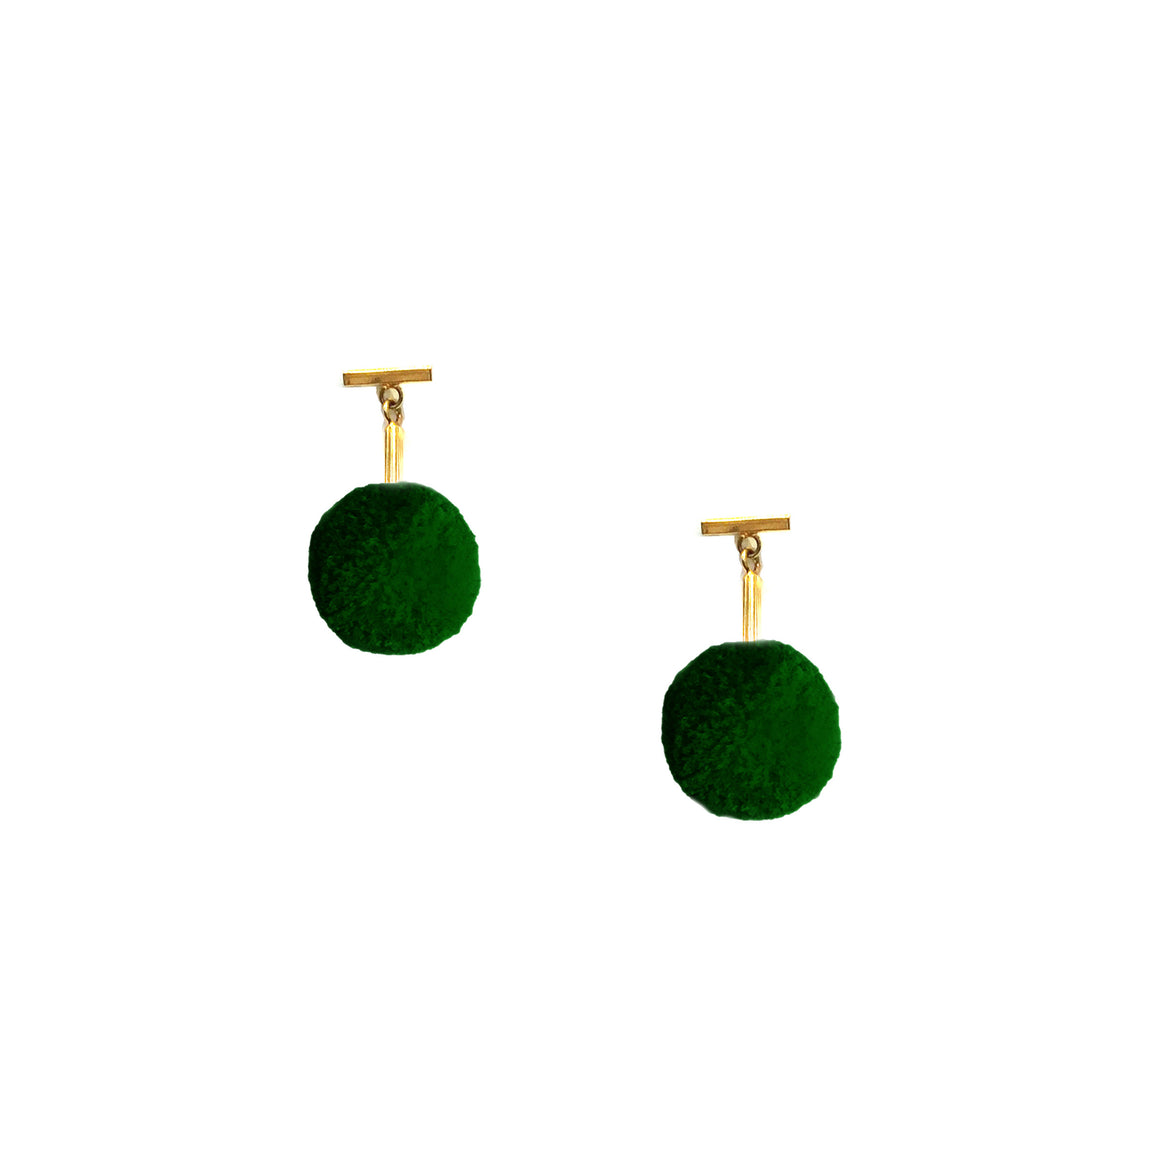 "Green 3/8"" Velvet Pom Pom T Stud Earrings, Earrings, Tuleste, Tuleste"